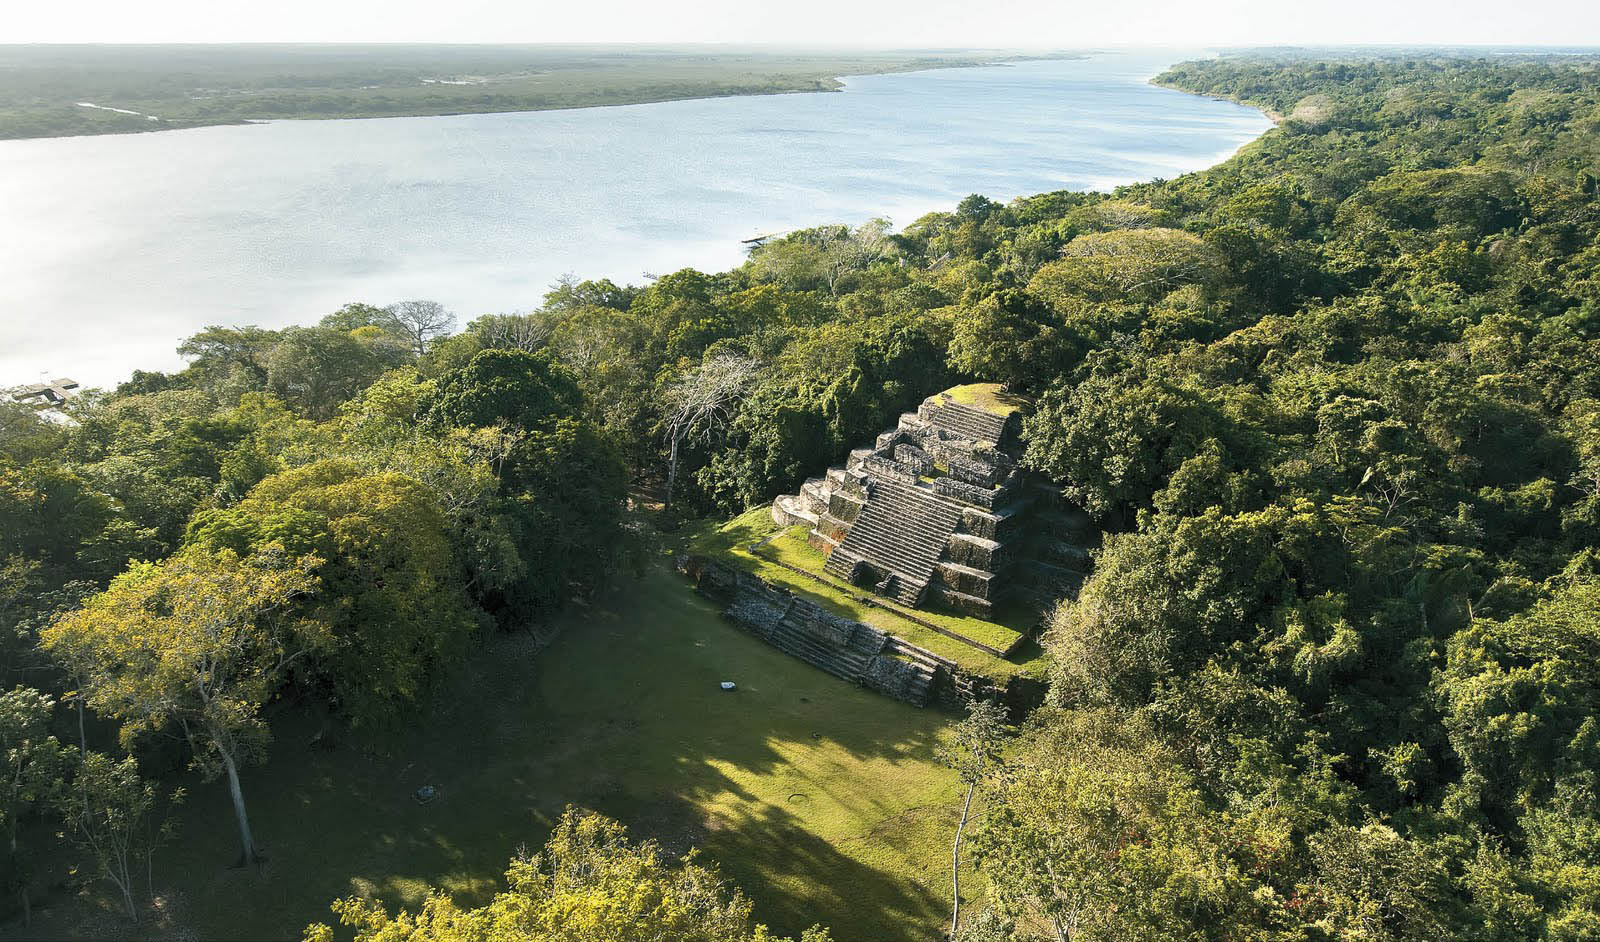 belize-lamanai-was-a-considerably-sized-m-secret-world